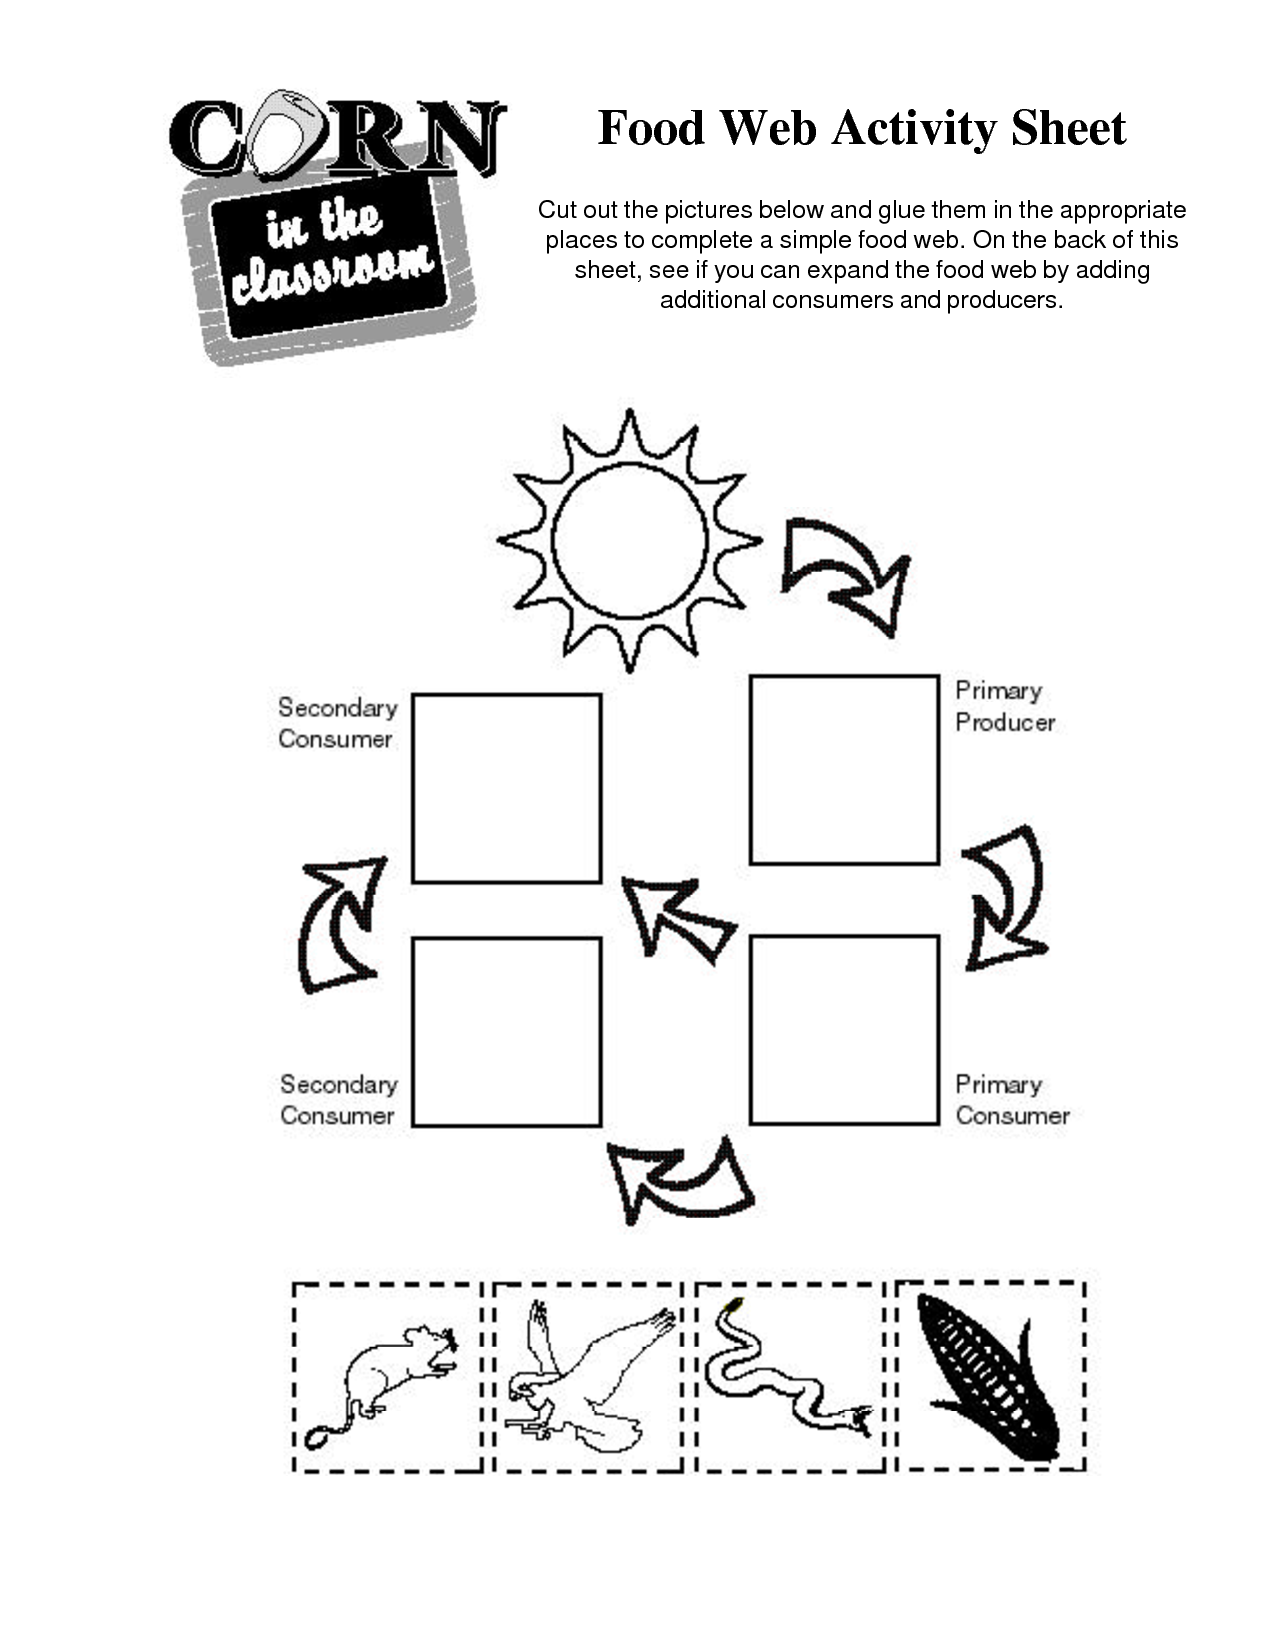 Worksheet Food Webs For Kindergarten Students food web activity sheet chain corn pinterest sheet